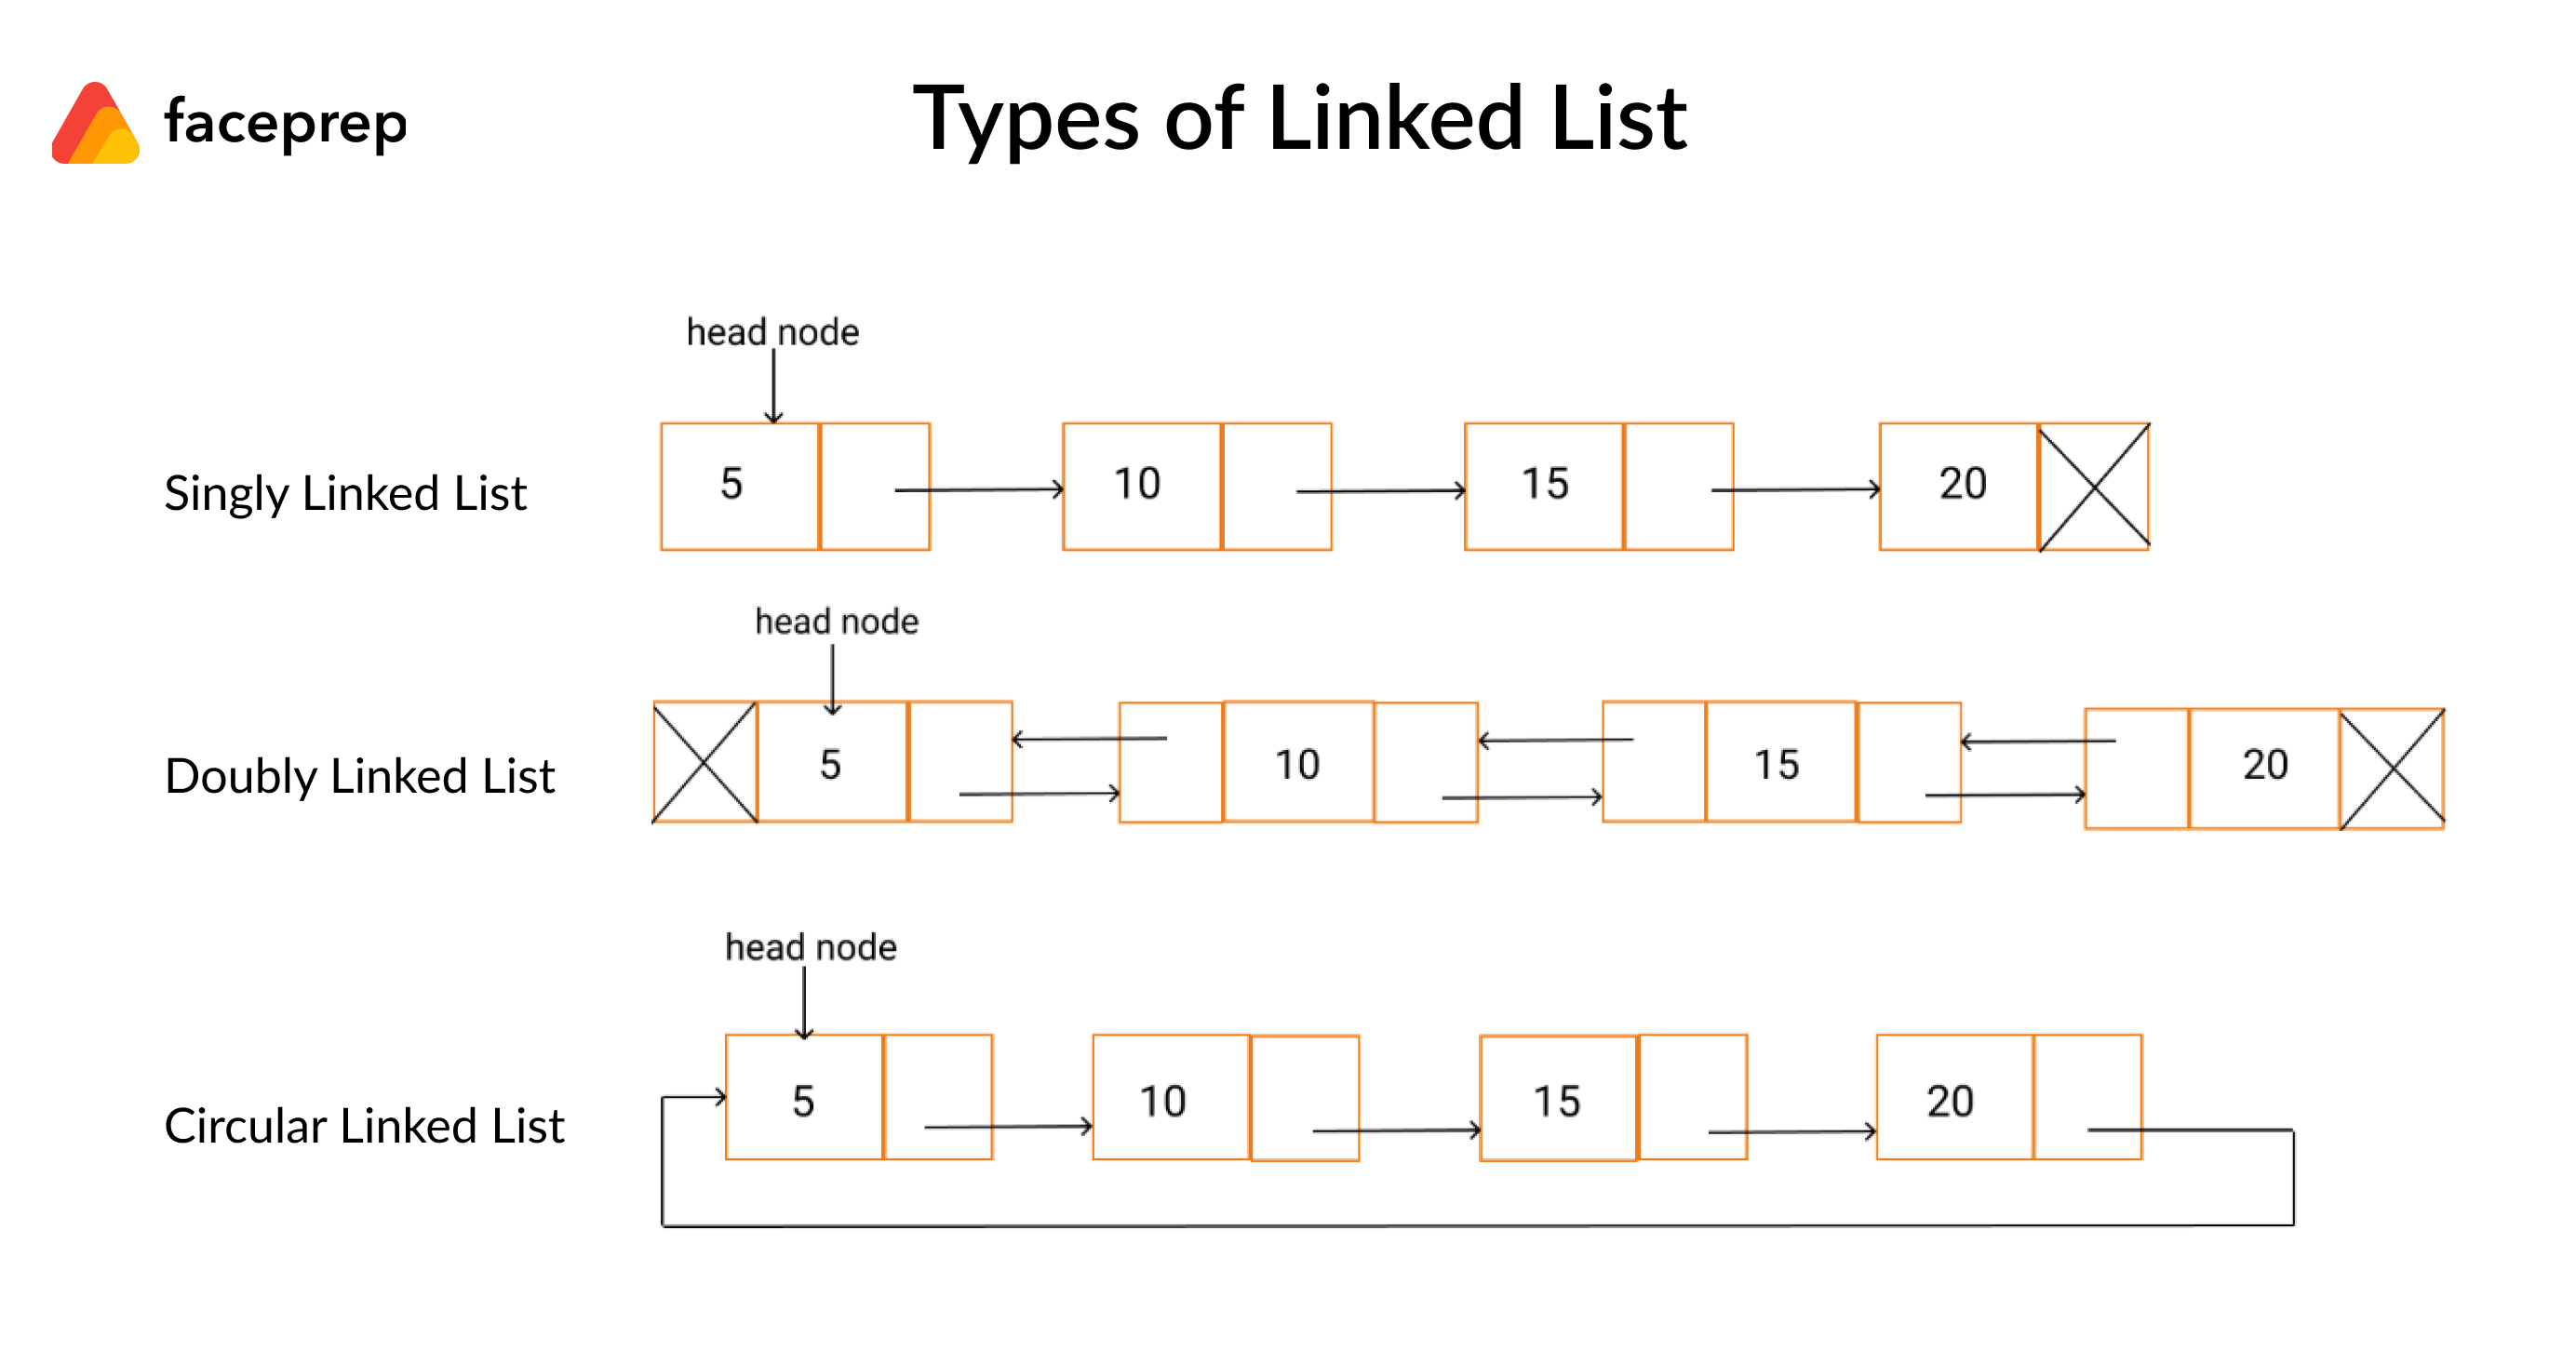 Types of Linked List